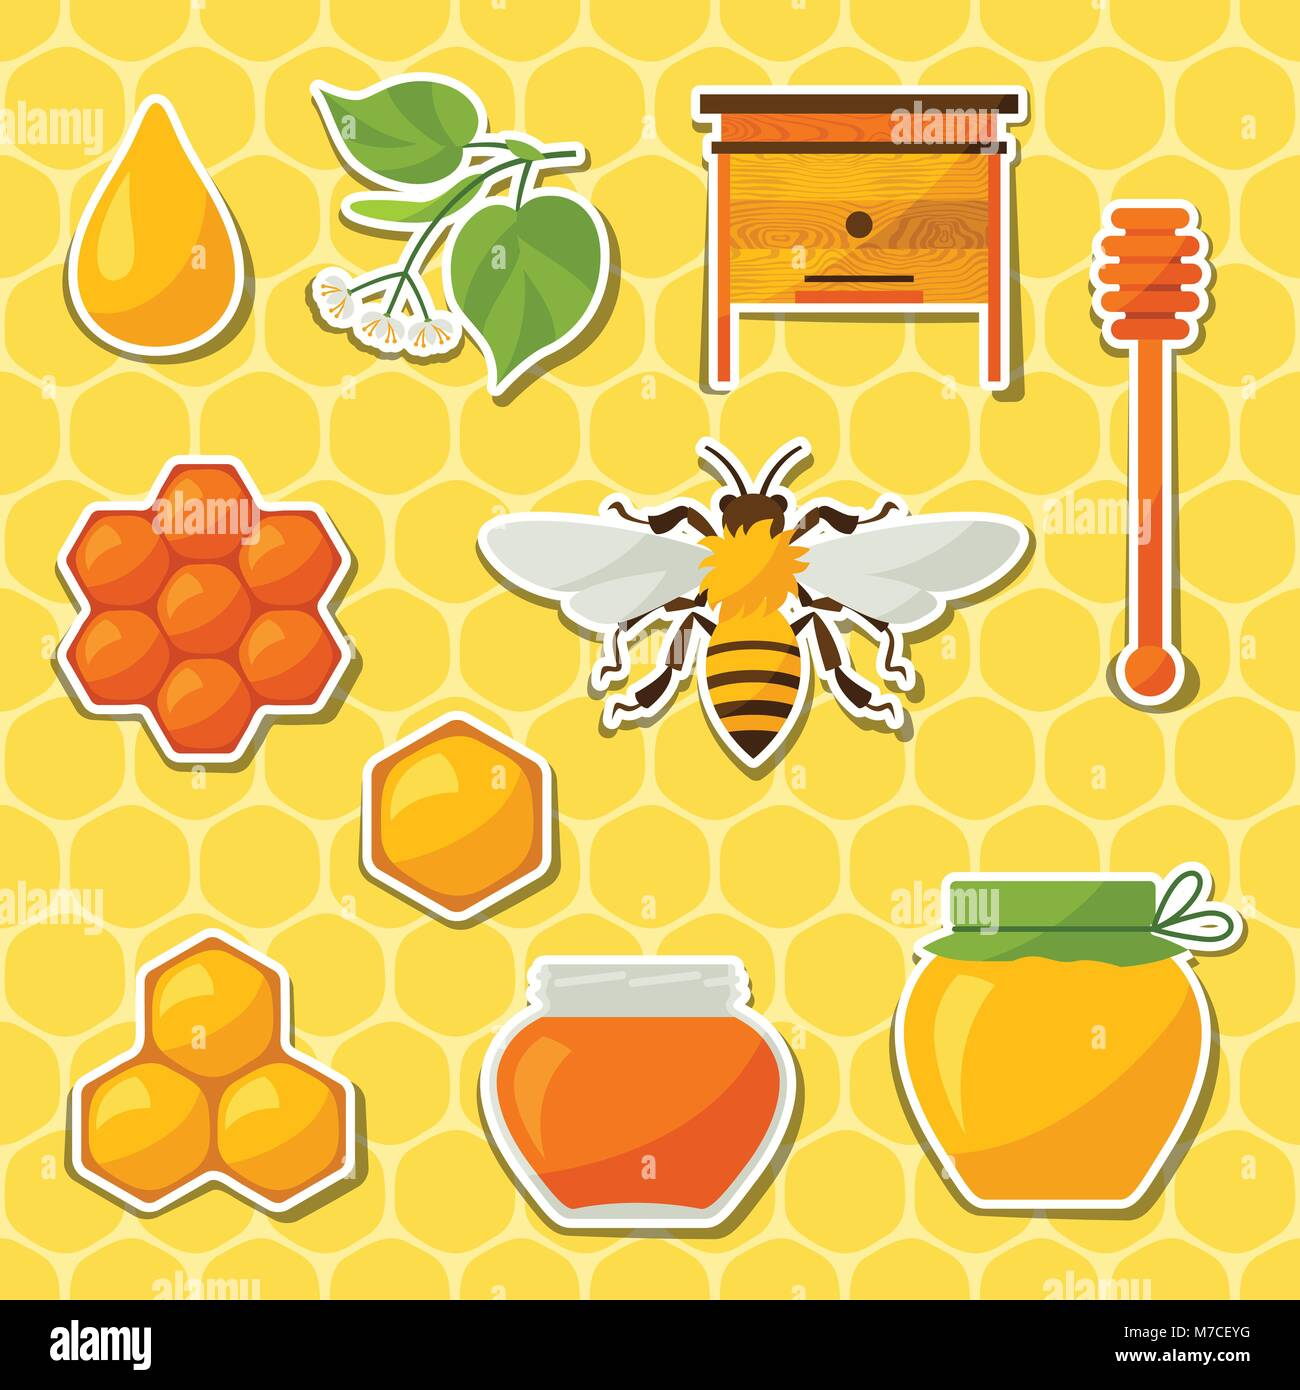 Background design with honey and bee objects - Stock Vector